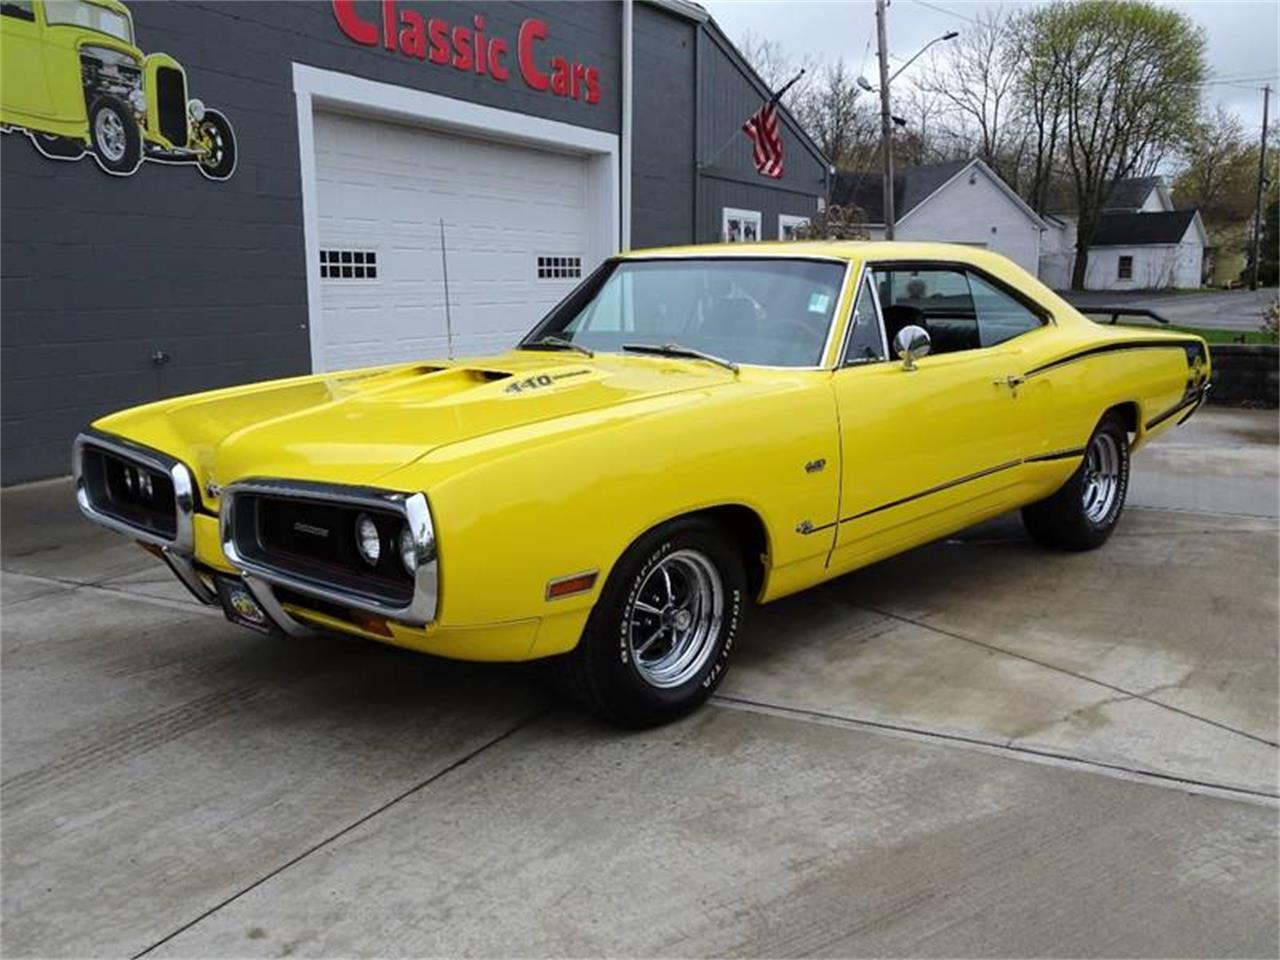 For Sale: 1970 Dodge Super Bee in Hilton, New York